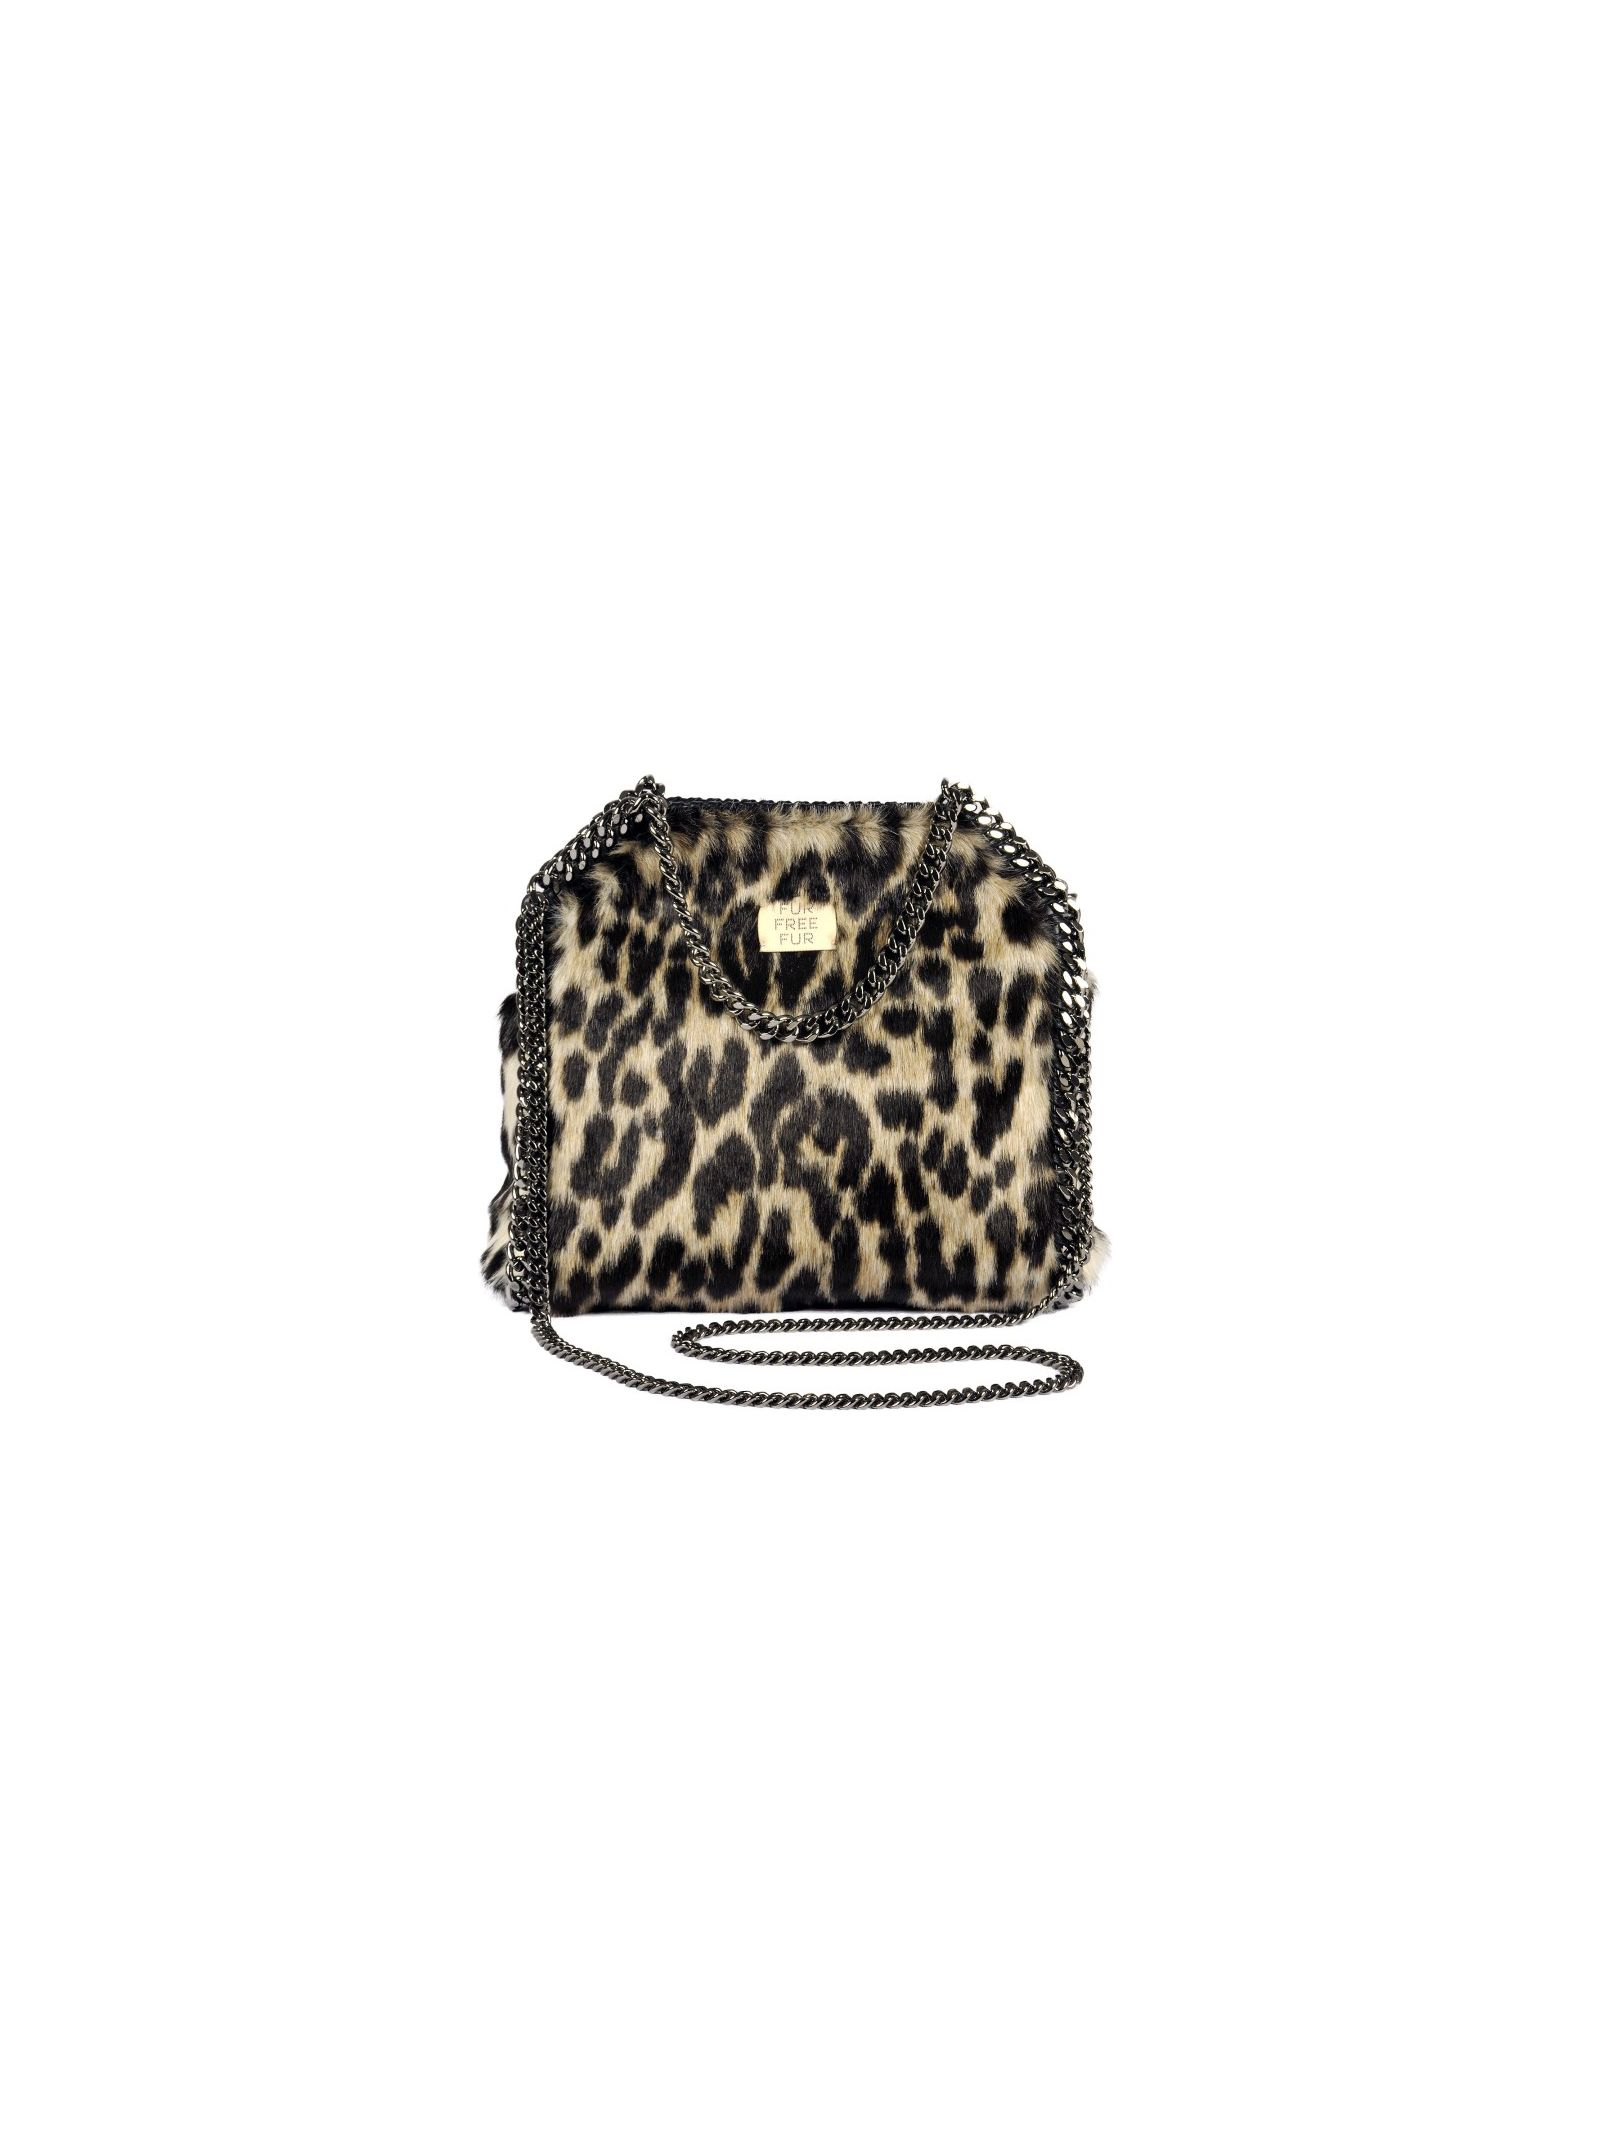 falabella shoulder bag from stella mccartney: ivory falabella shoulder bag with top handles, silver-tone chain trim, leopard print, silver-tone chain shoulder strap, top magnetic closure and internal slip pocket.